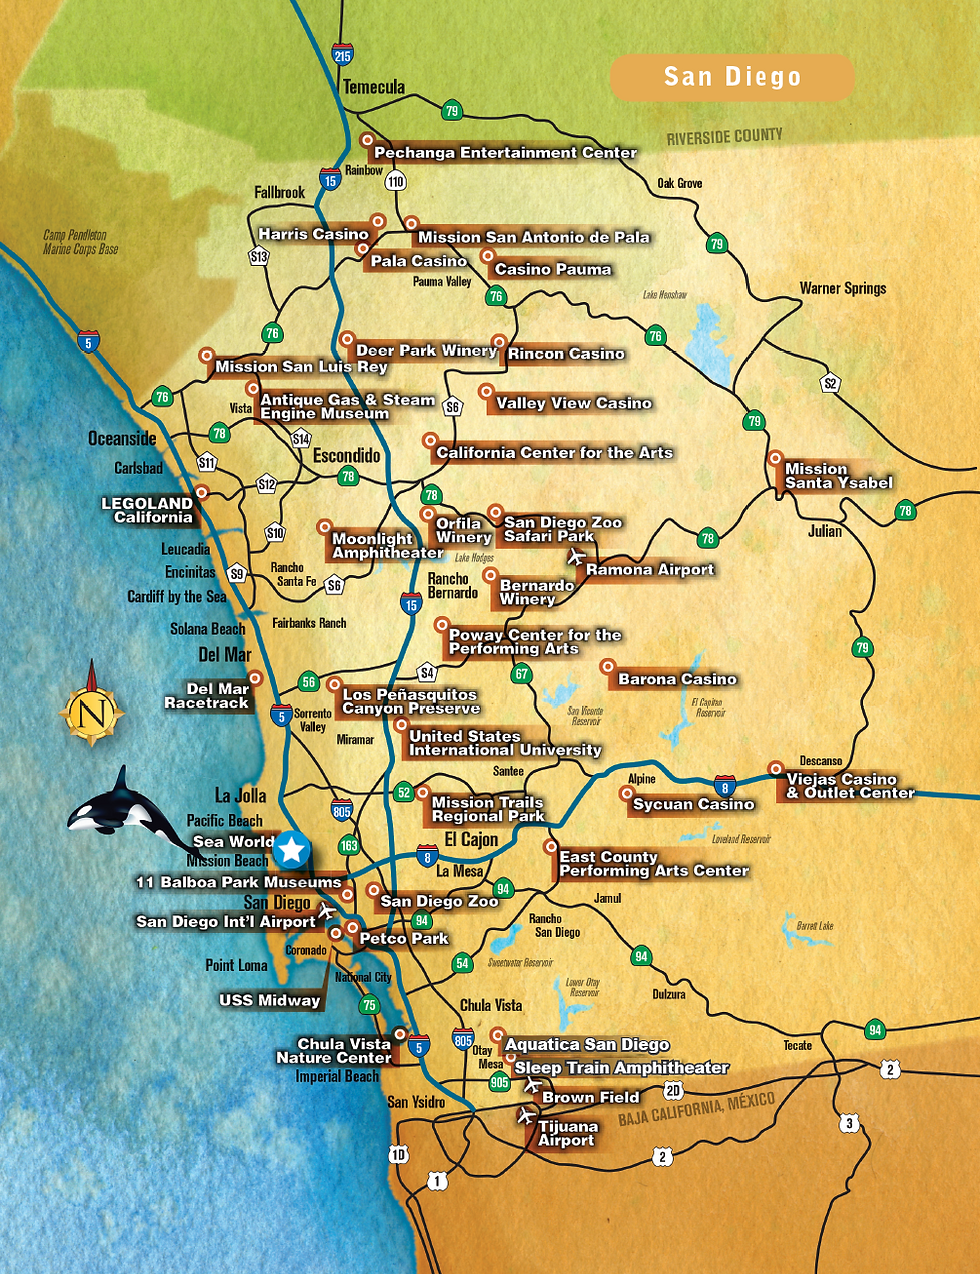 San Diego Map.png